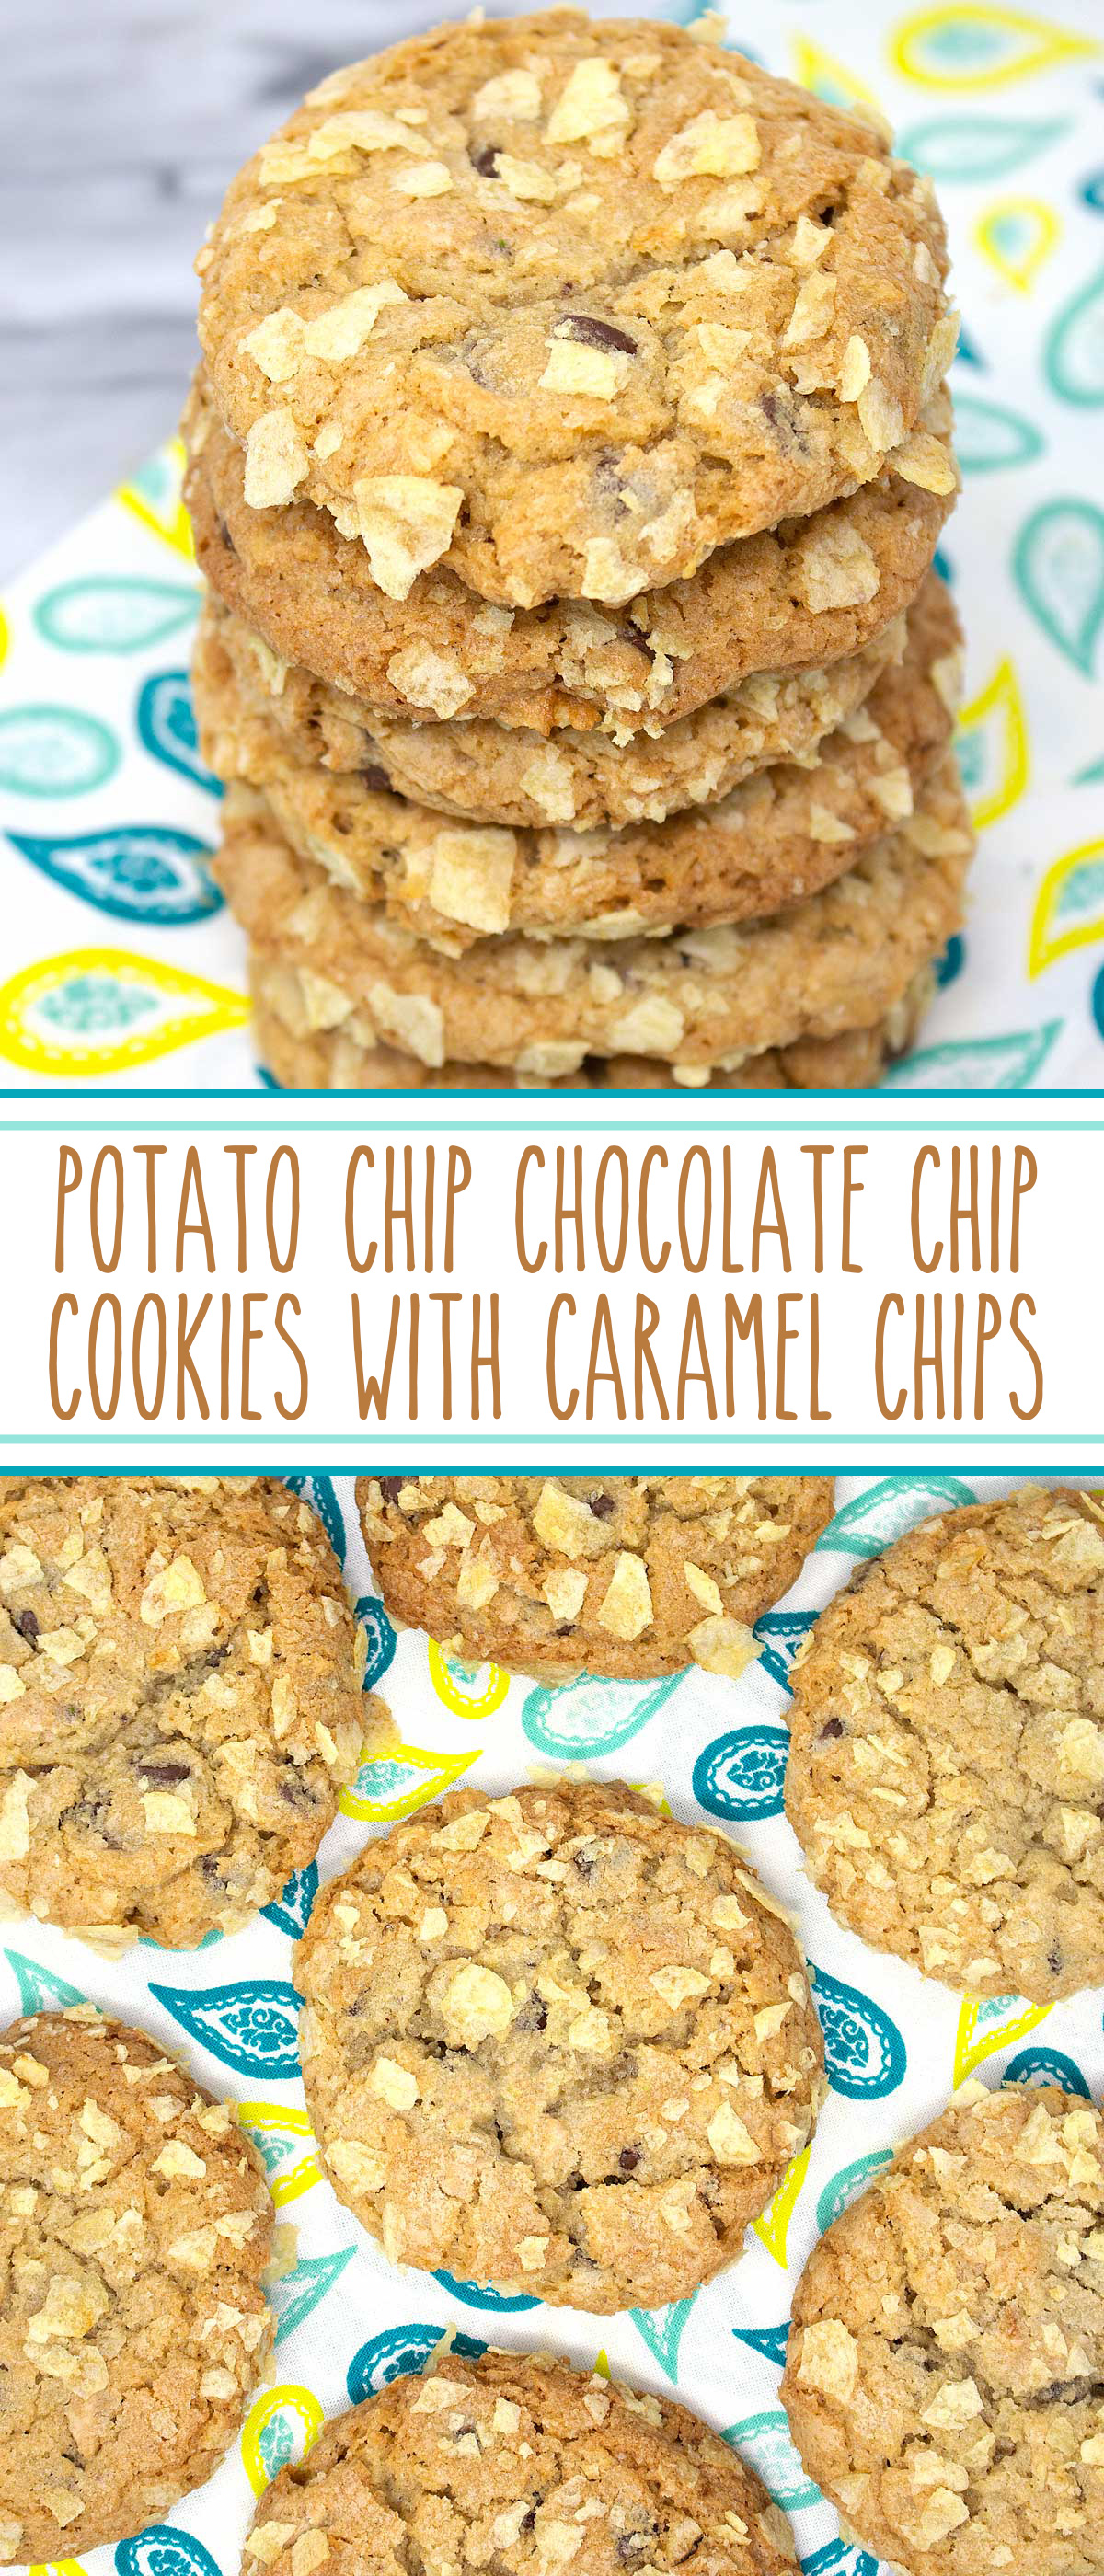 Potato Chip Chocolate Chip Cookies with Caramel Chips - magnificent sweet and salty cookies, triple stuffed with potato chips, chocolate chips, and caramel chips makes these salty-sweet cookies, pure perfection. #sarahsbakestudio #cookies #potatochips #chocolatechips #caramelchips #sweetandsaltycookies #potatochipcookies